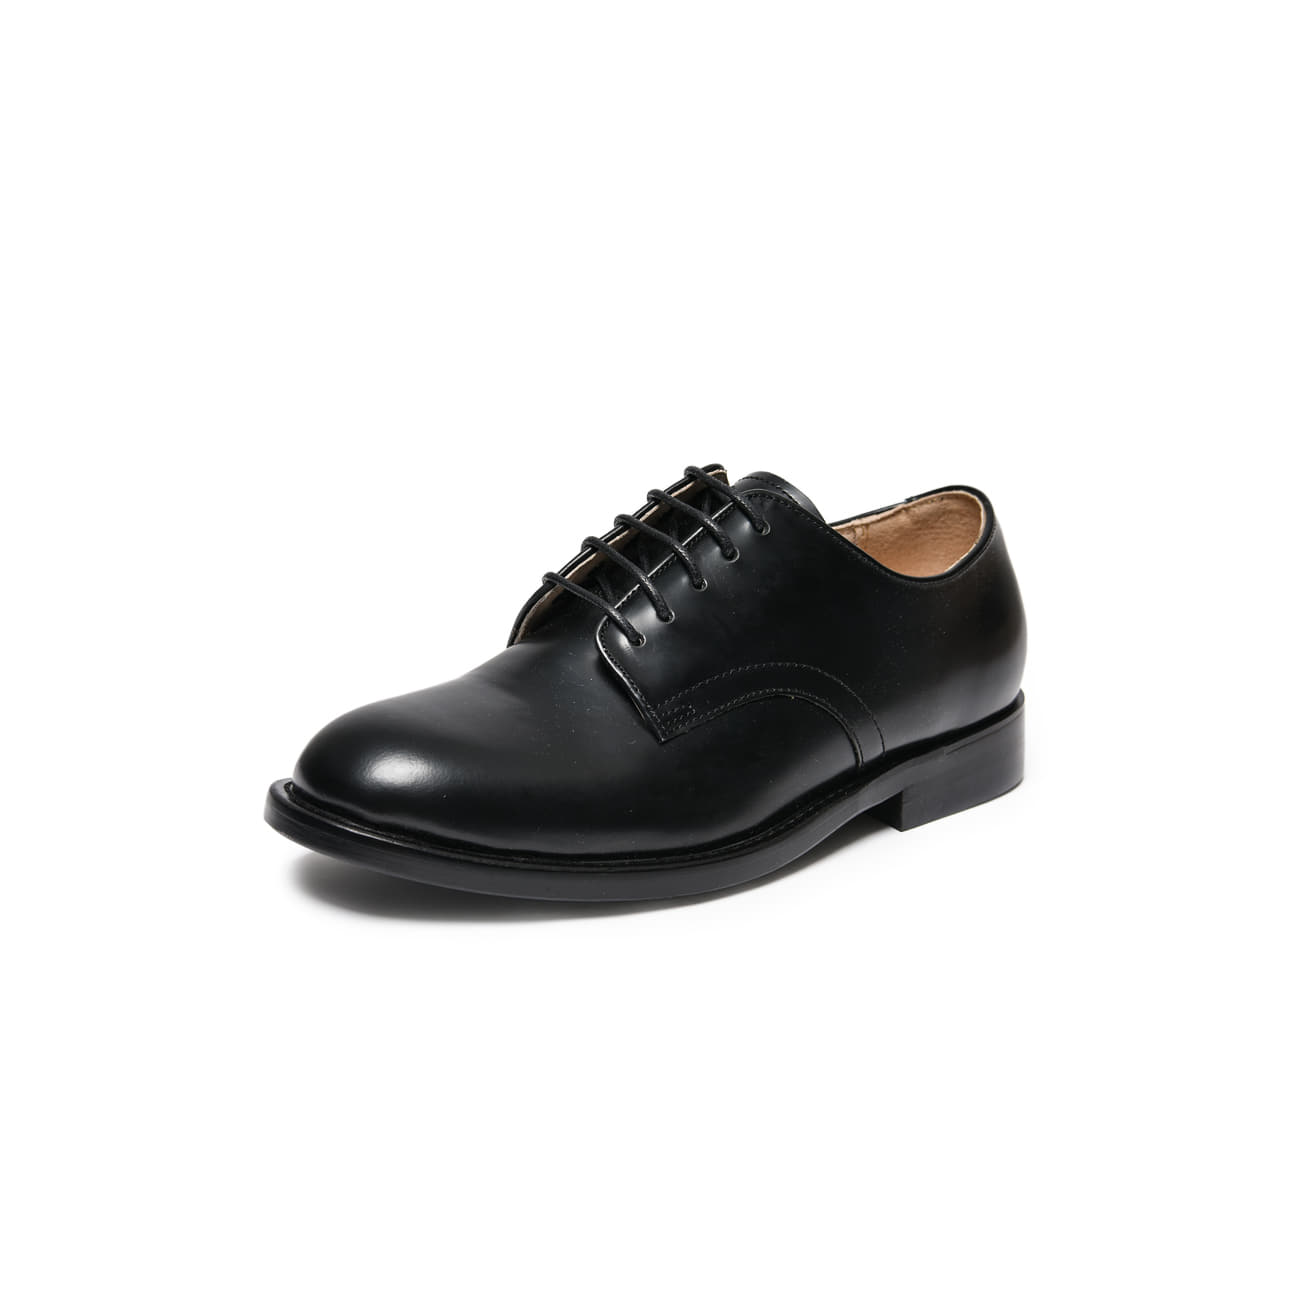 U.S Navy Oxford Shoes